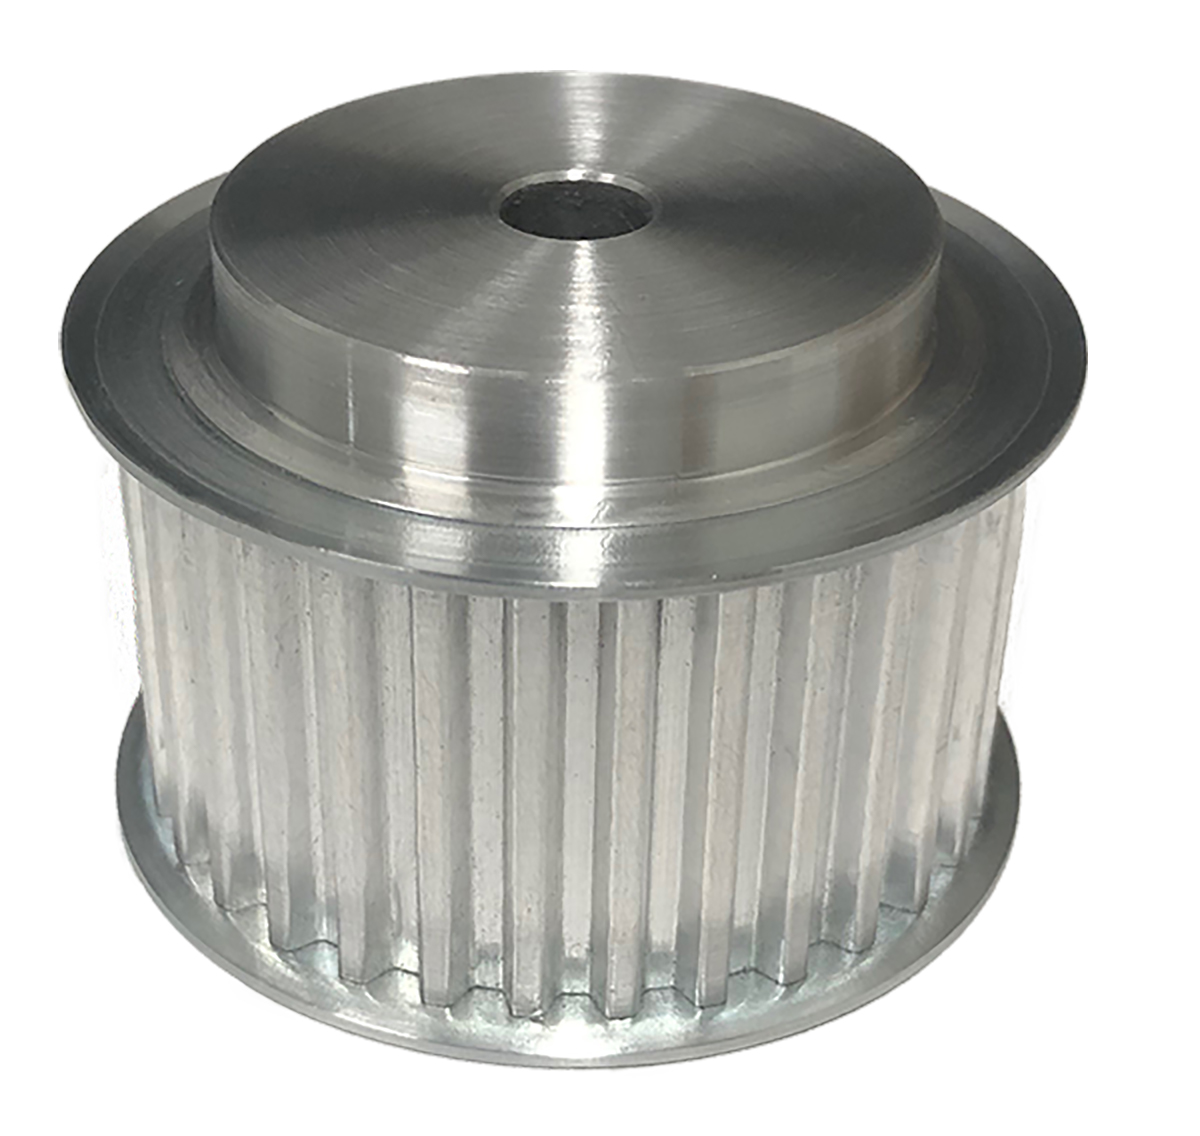 36T5/32-2 - Aluminum Metric Pulleys